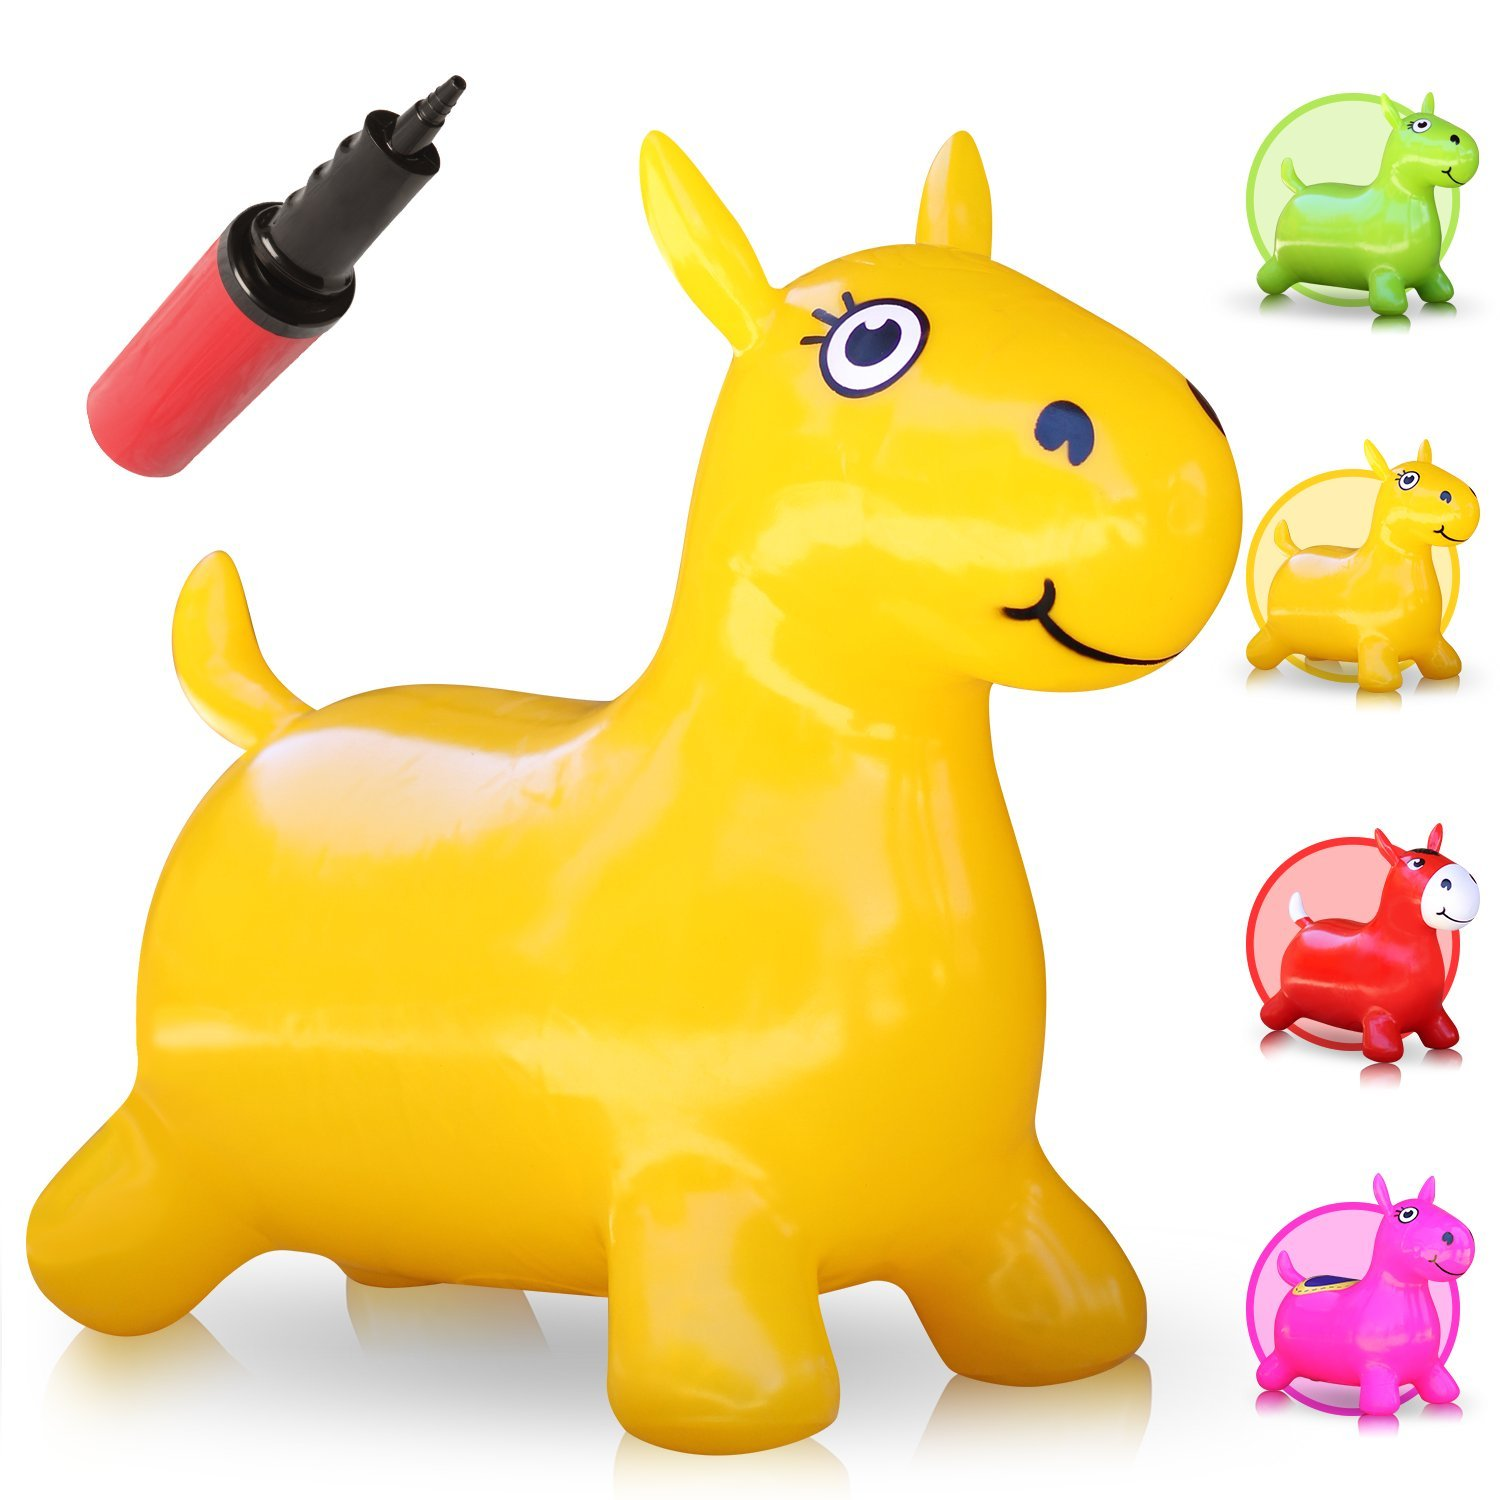 WALIKI Hopping Horse Hopper Johnny The Bouncy Horse Ridding Horse for Kids Pump Included Yellow